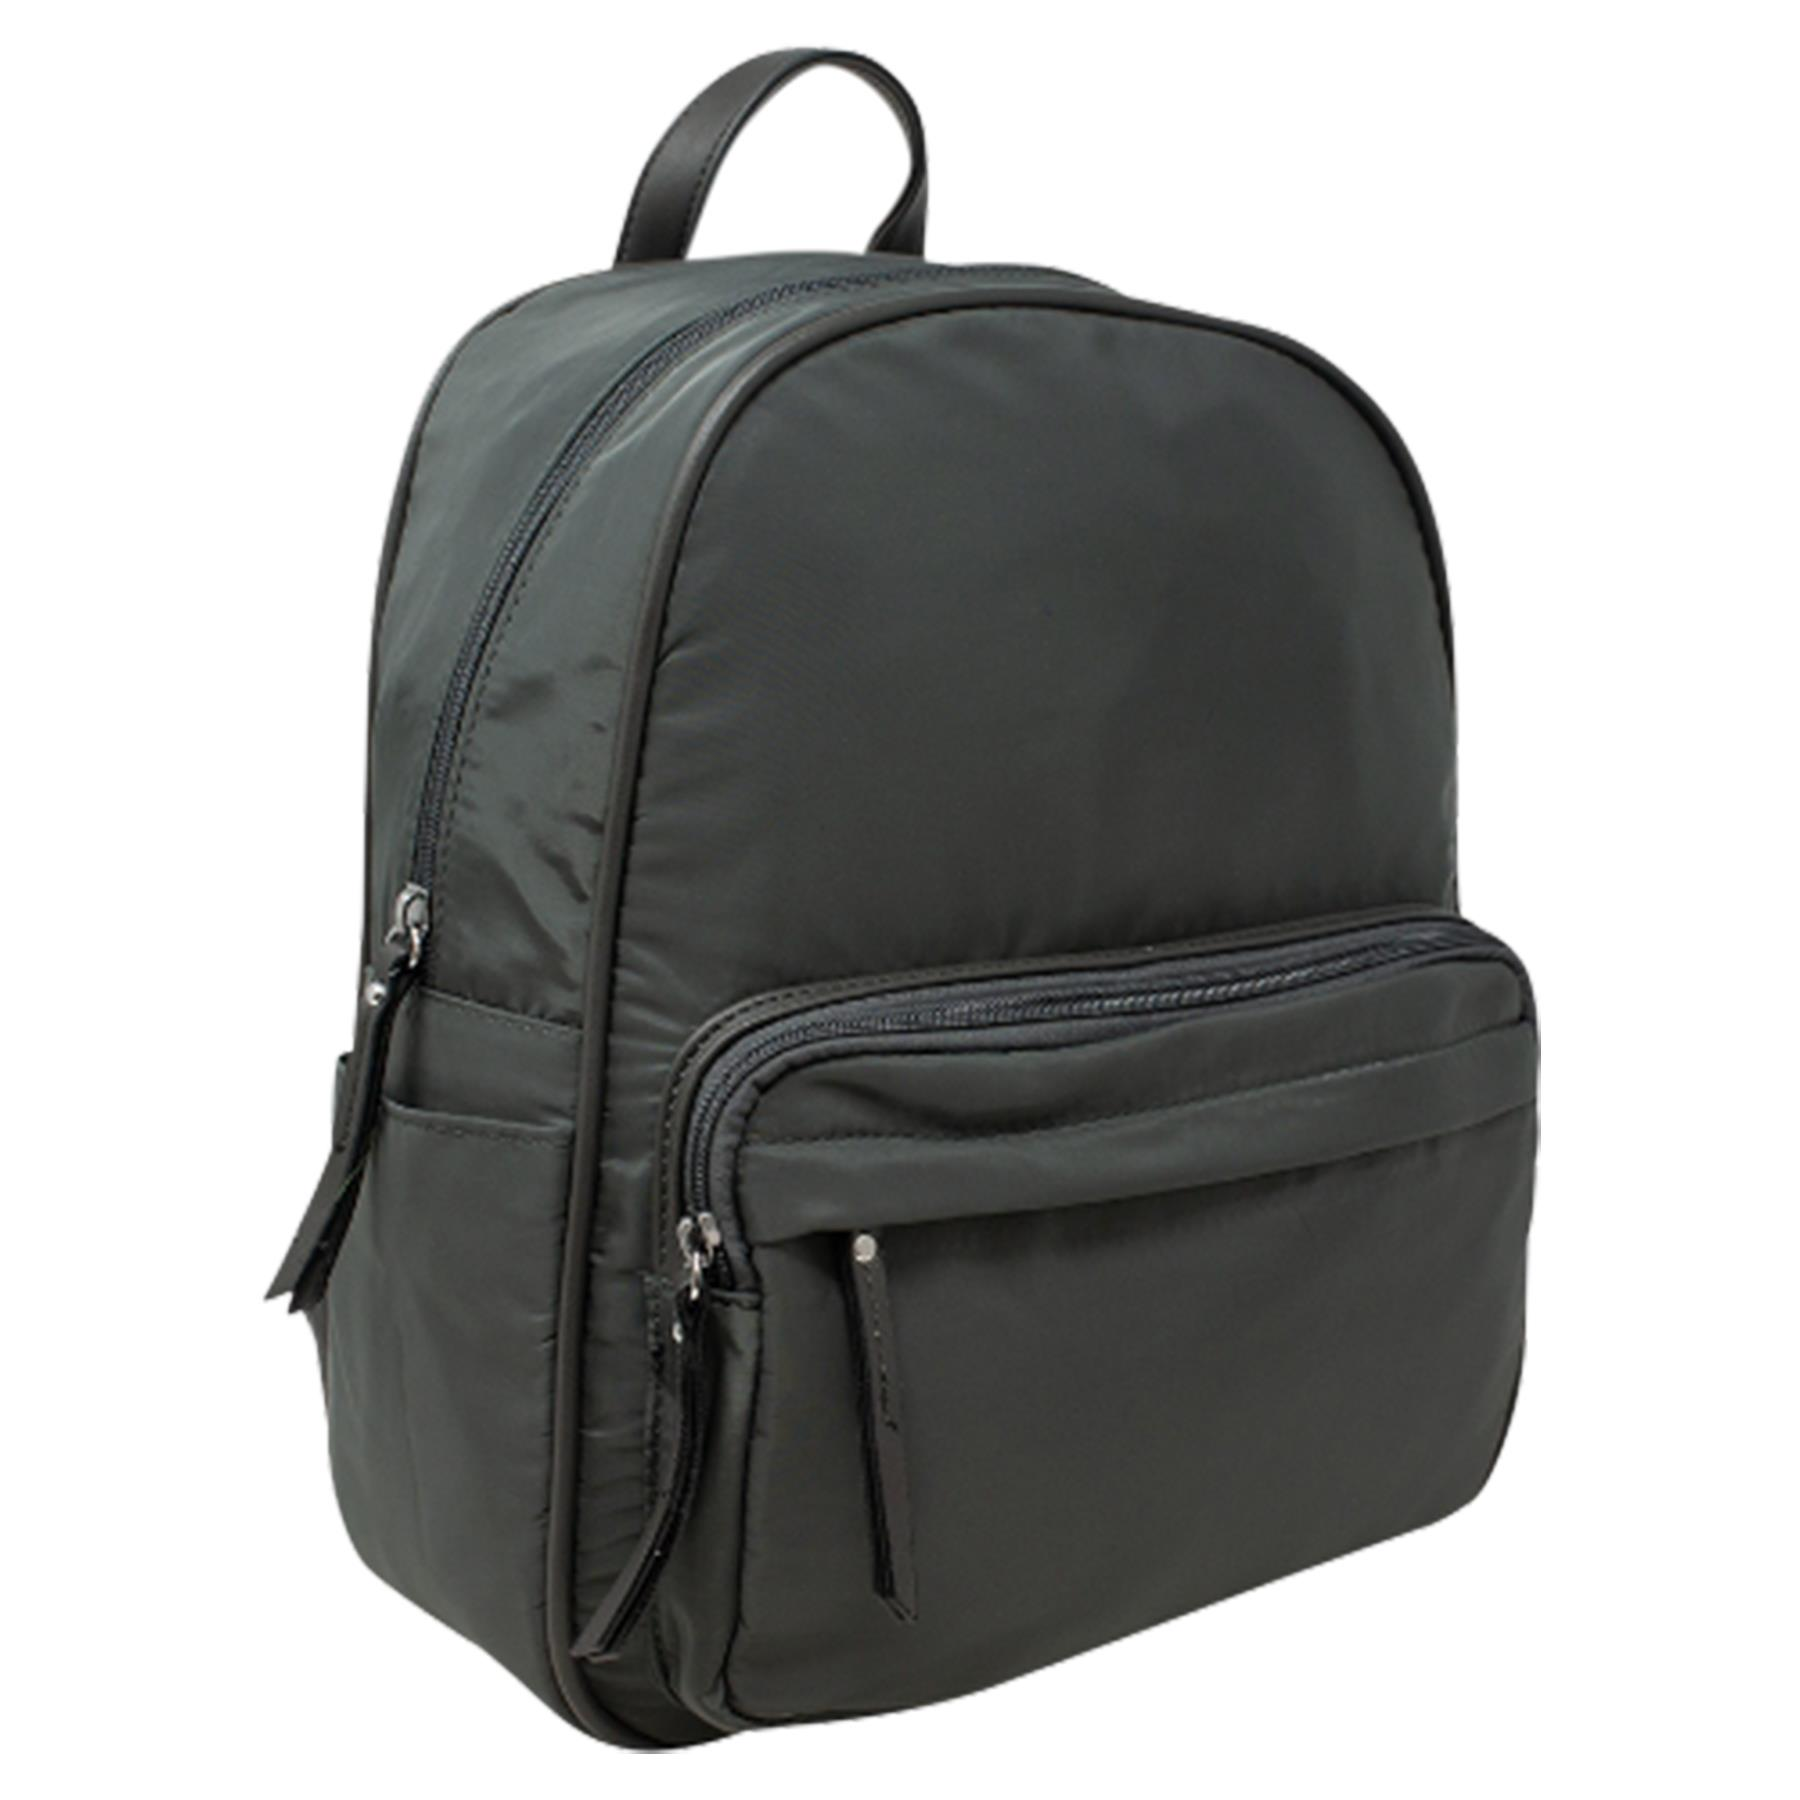 New-Unisex-Plain-Nylon-Showerproof-School-College-Backpack-Rucksack thumbnail 17